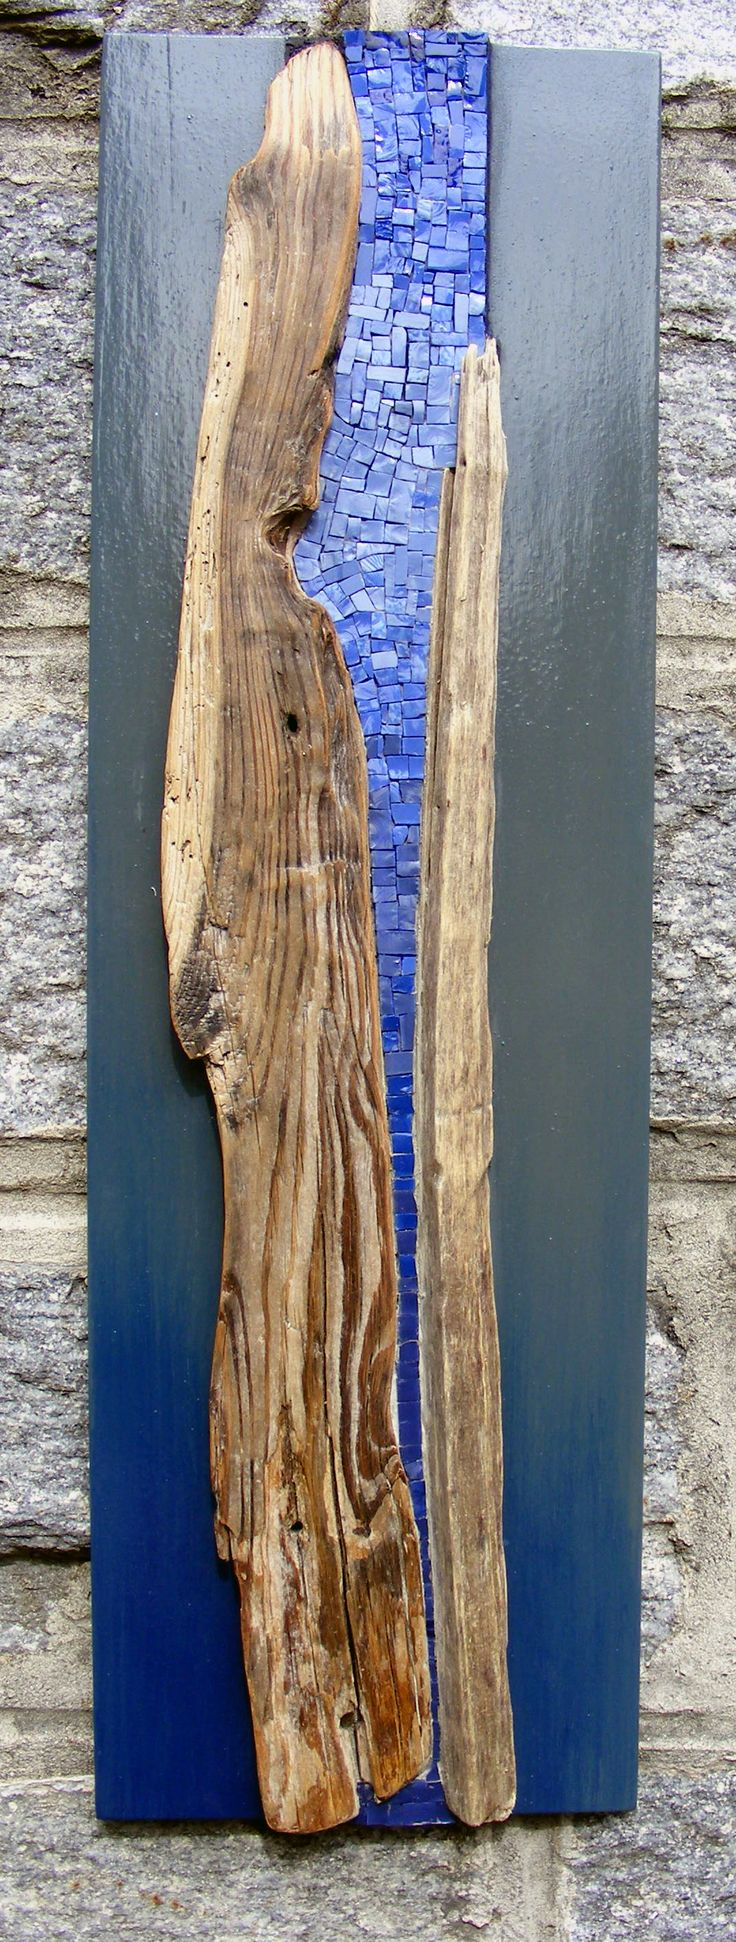 Mosaic in drift wood - no attribution                                                                                                                                                      More